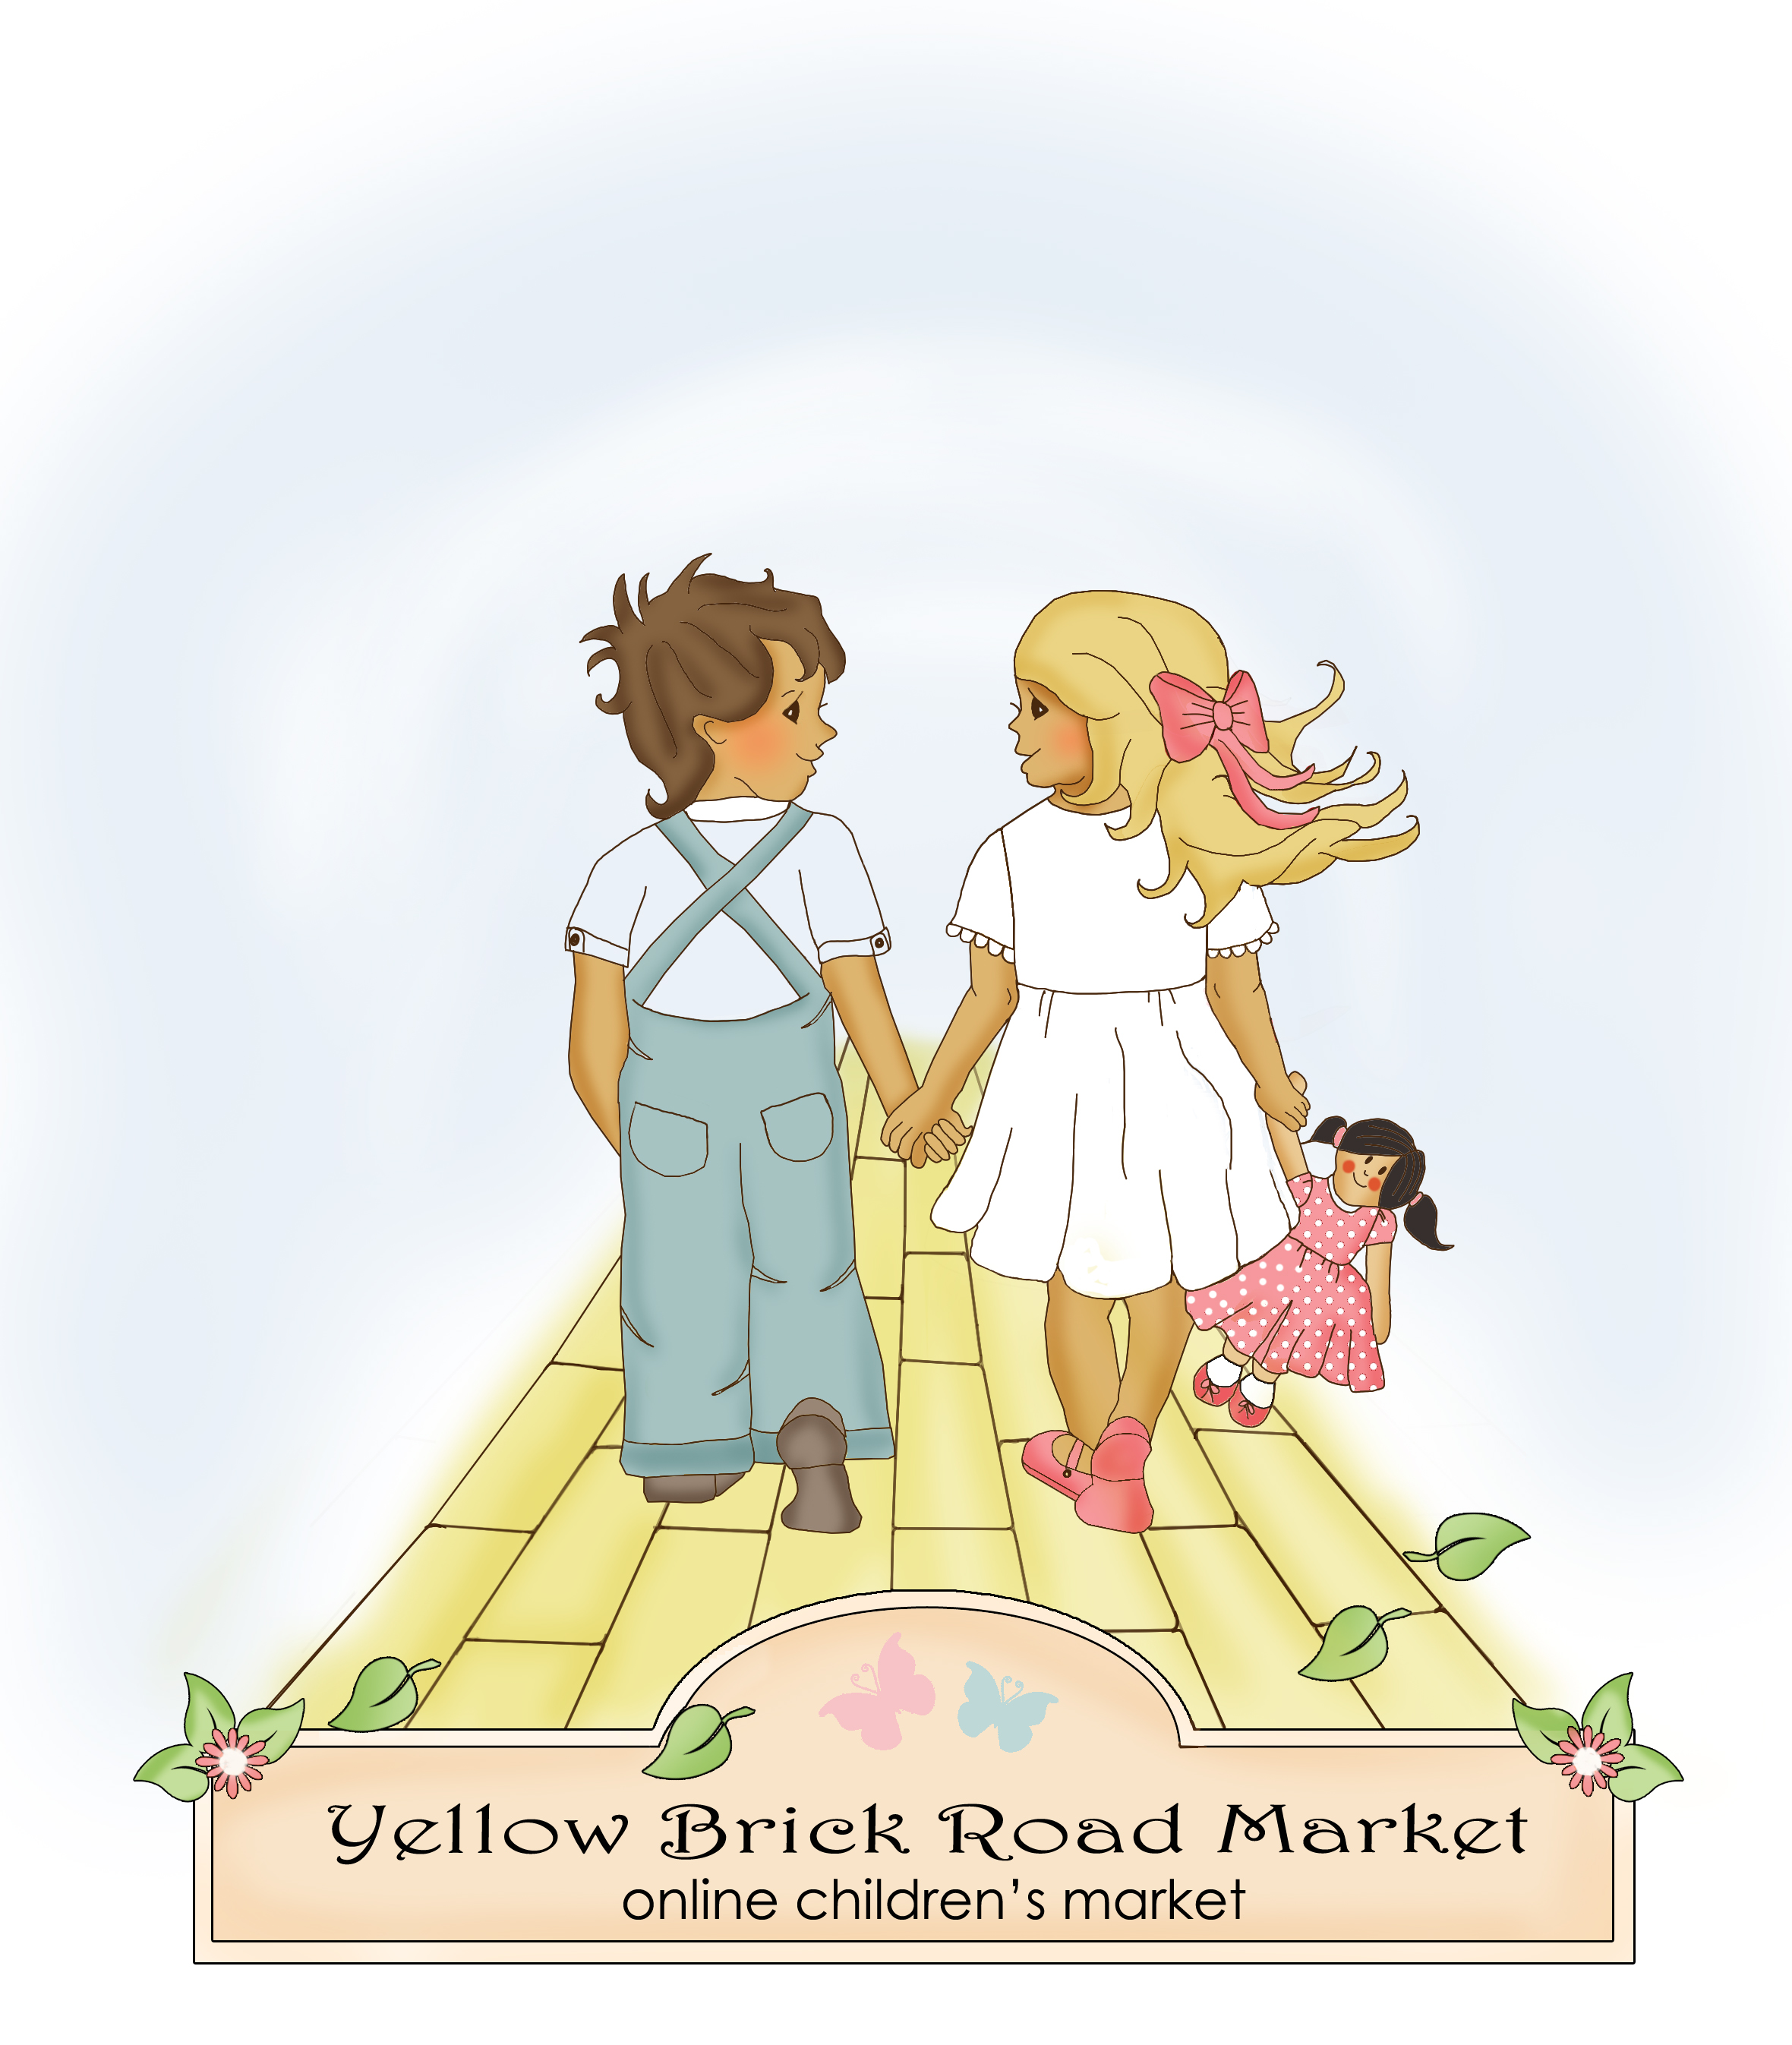 Yellow Brick Road Market